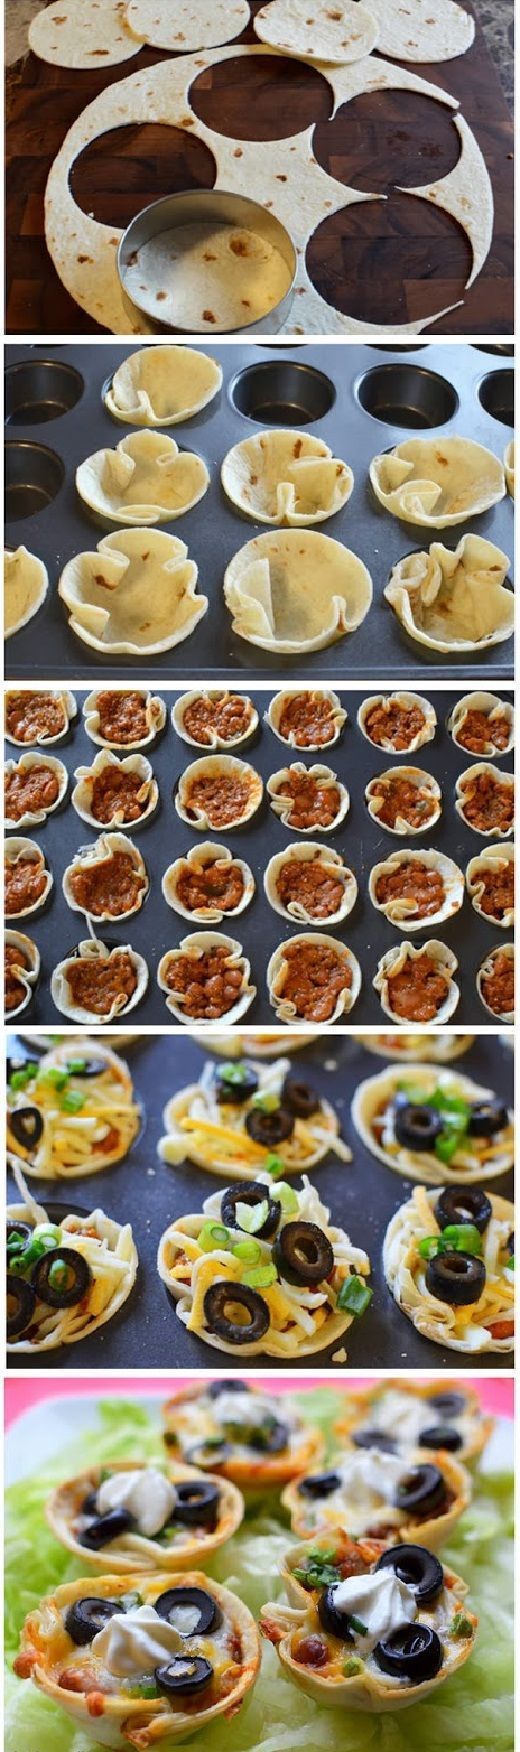 best ideas finger foods canapés u all things yummy images